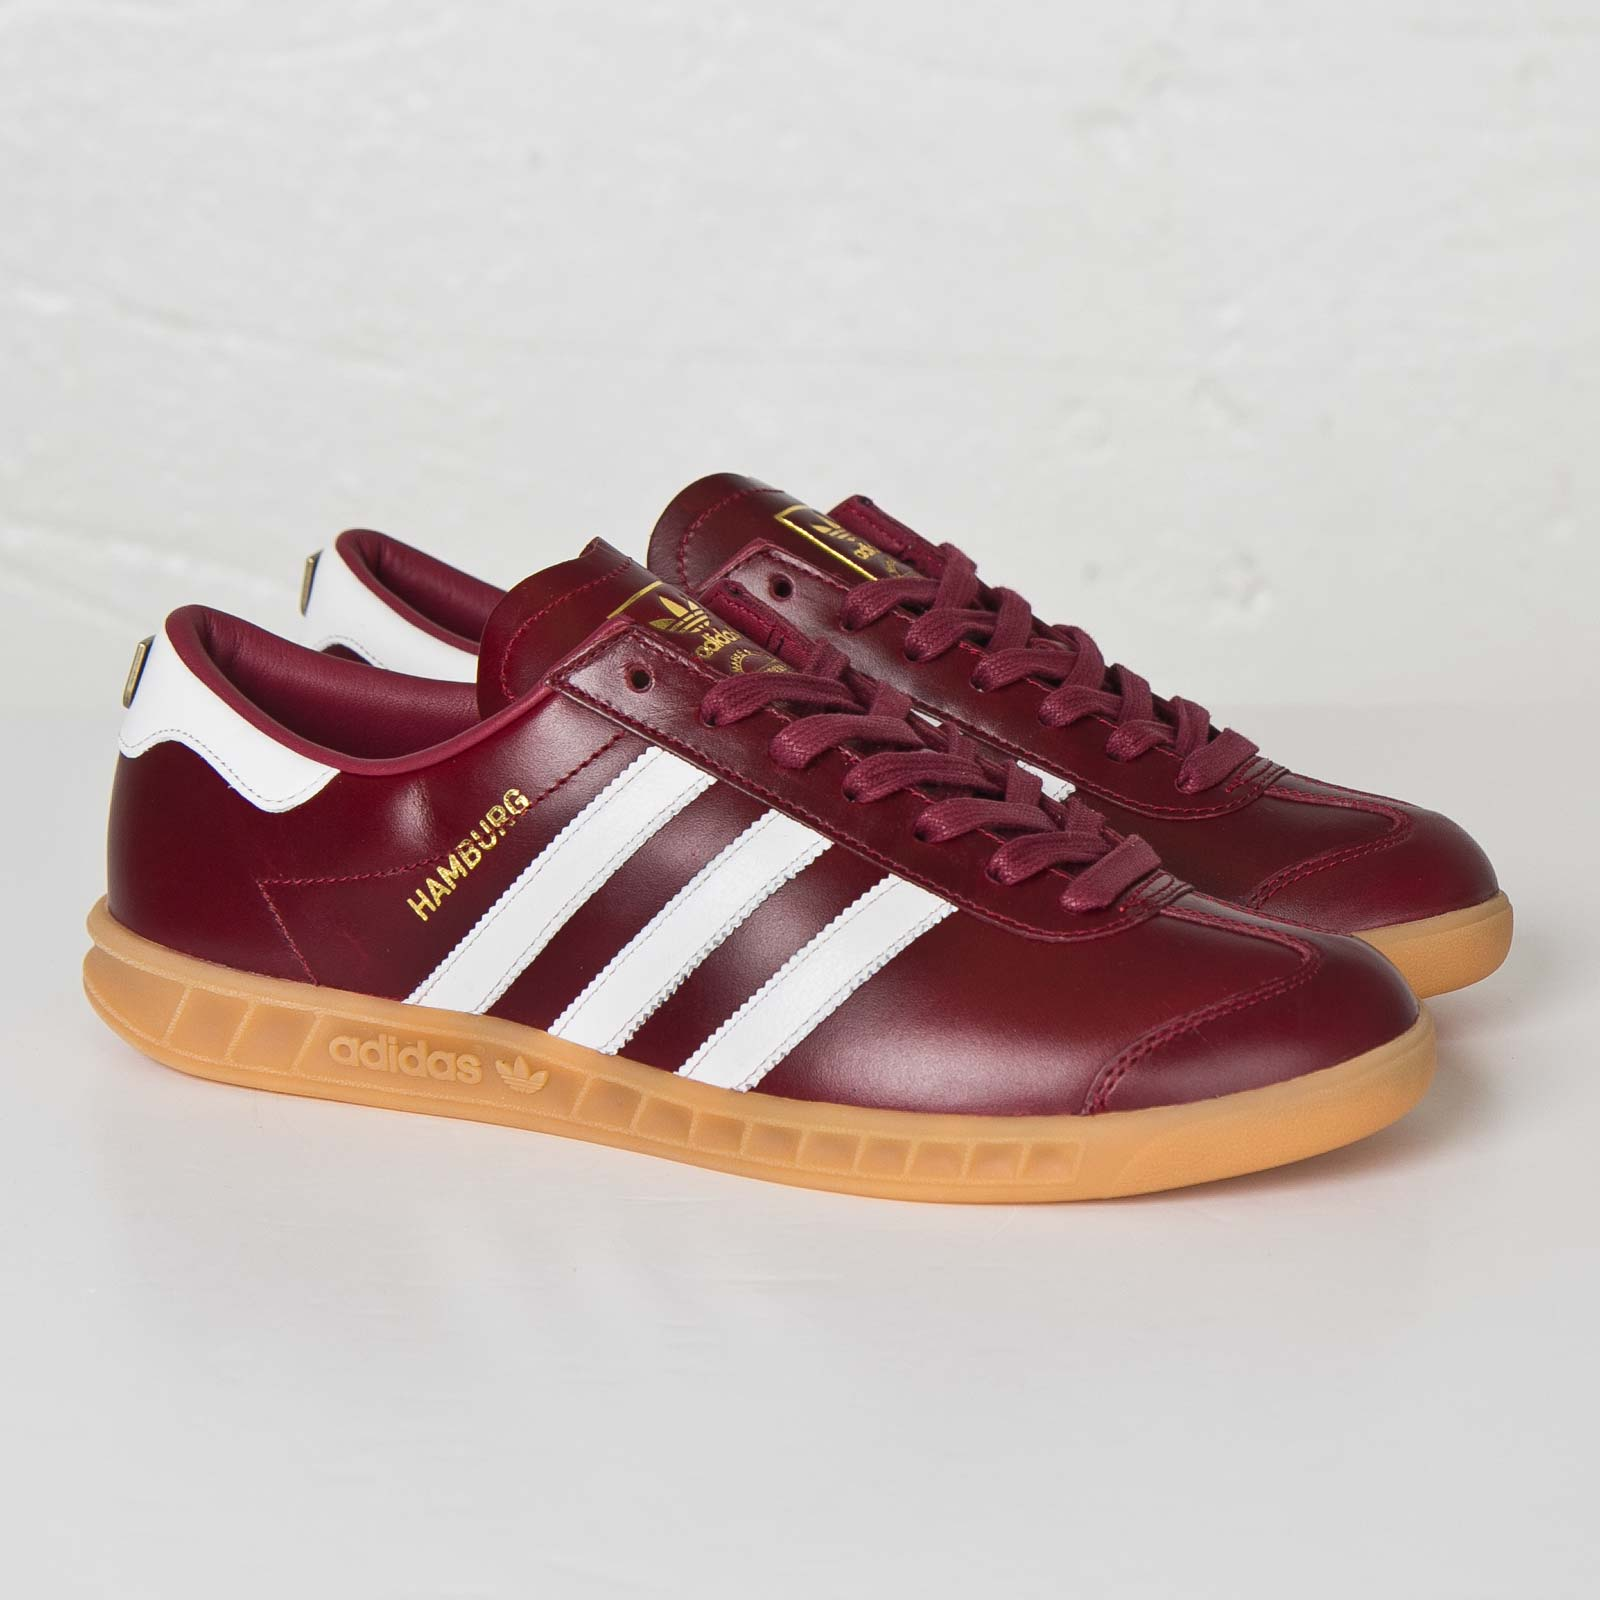 adidas Hamburg Made In Germany - S31603 - SNS   sneakers ...